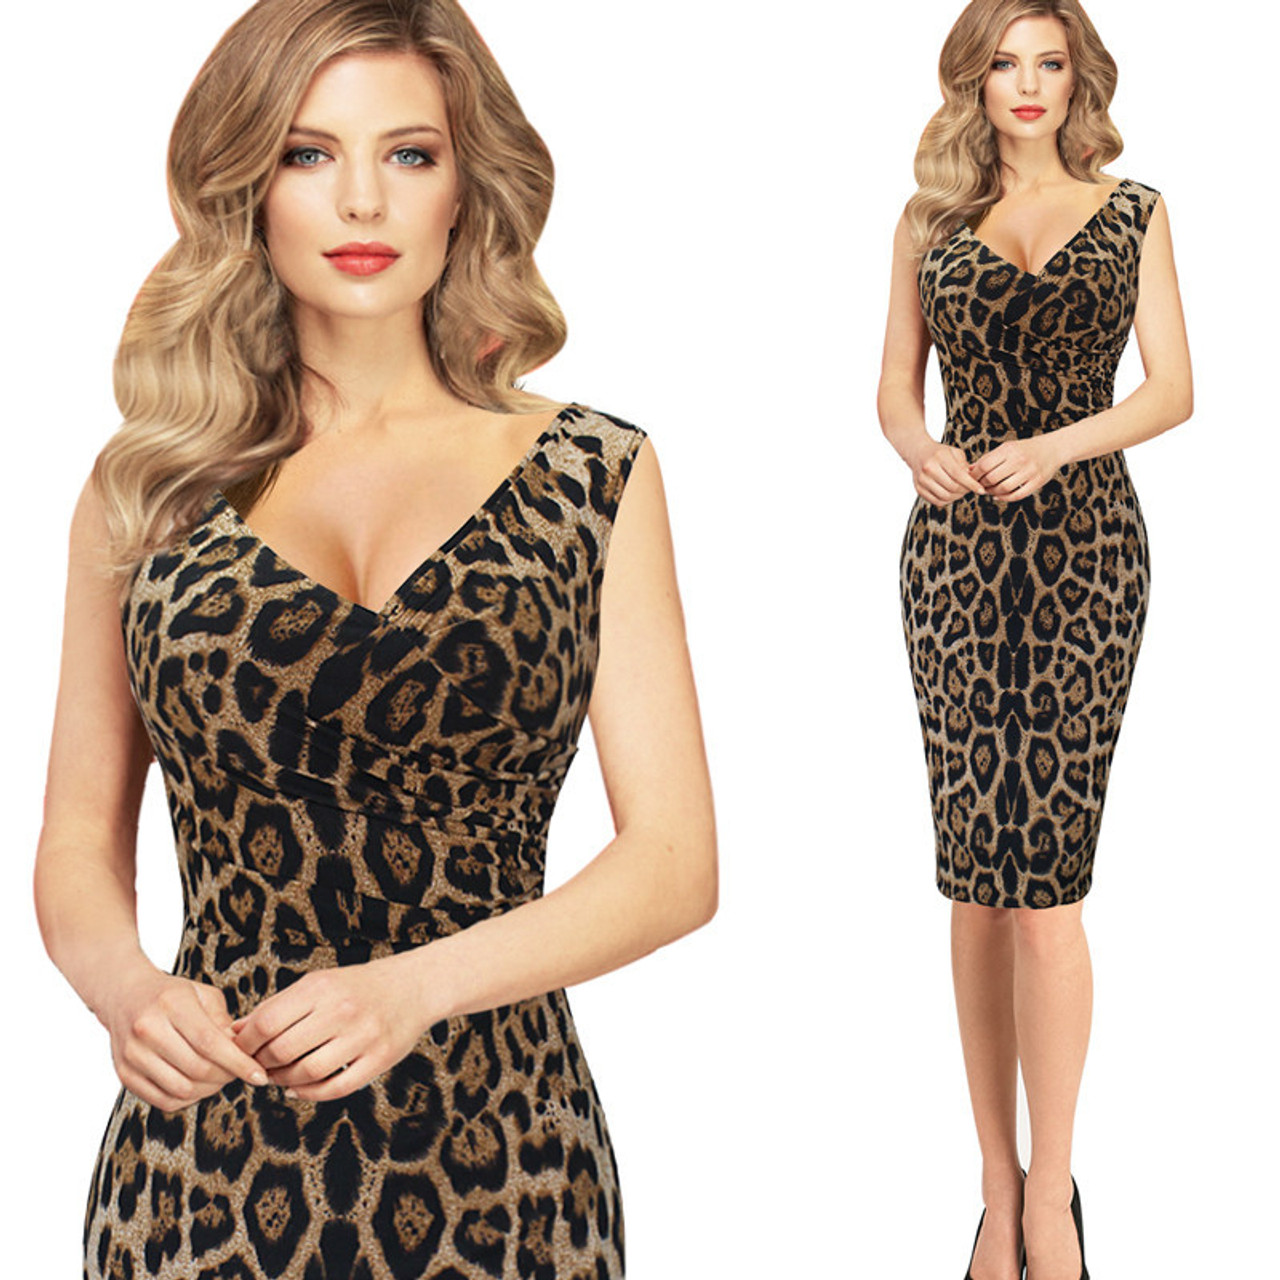 e2b641f515 2017 Summer Hottest Women s Sexy Leopard Print Dress V Collar Sleeveless  Waist Ruched Tank Night Club Party Tight Dress - OnshopDeals.Com